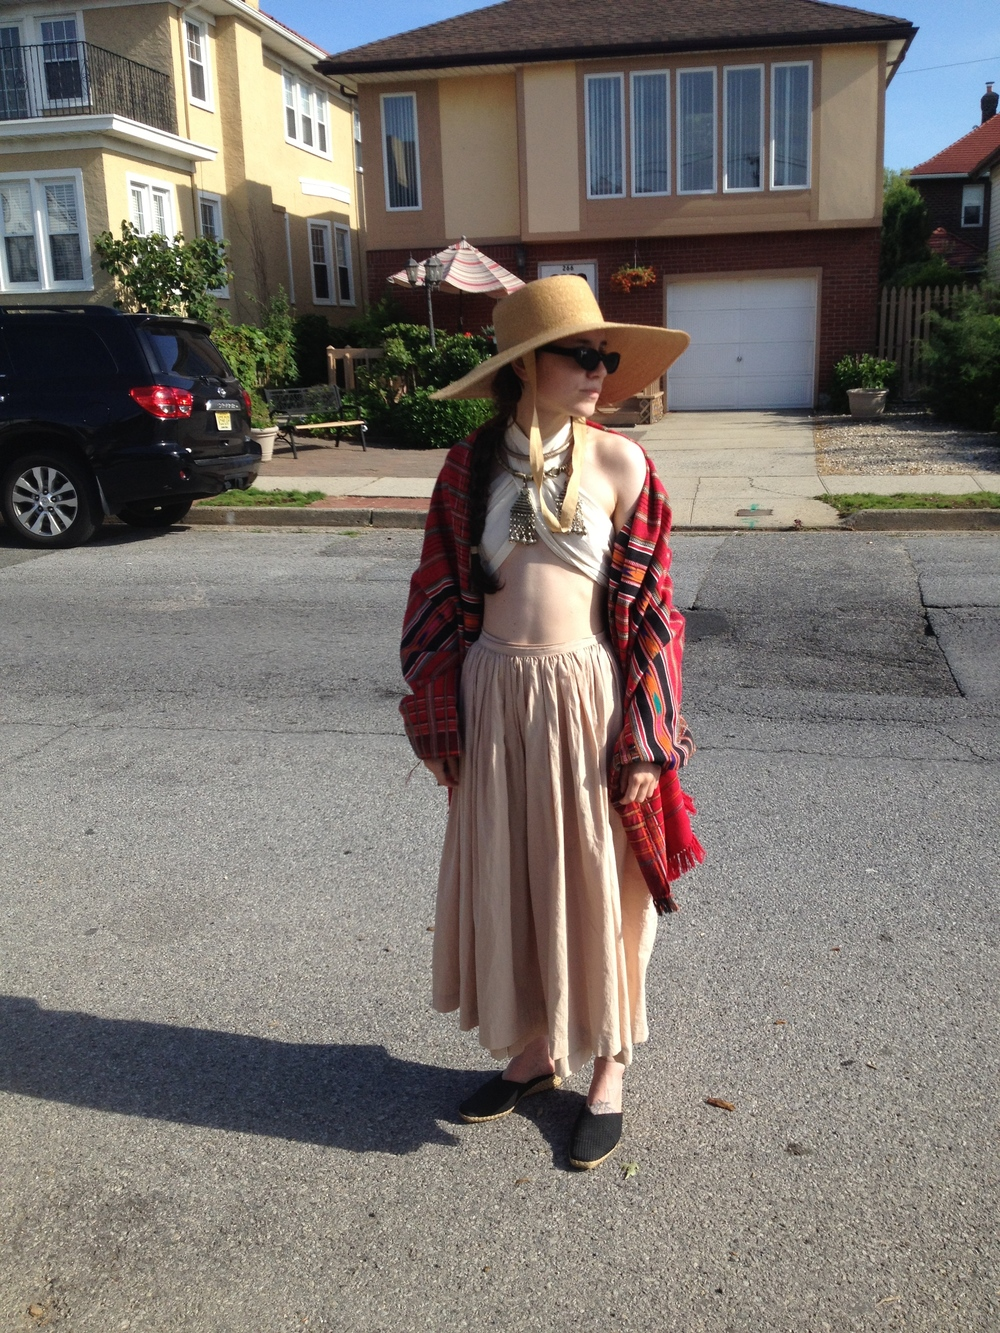 On a day trip to Long Beach wearing a straw hat and woven blanket from Beacons Closet. I made the wrap skirt and muslin bandeau top.